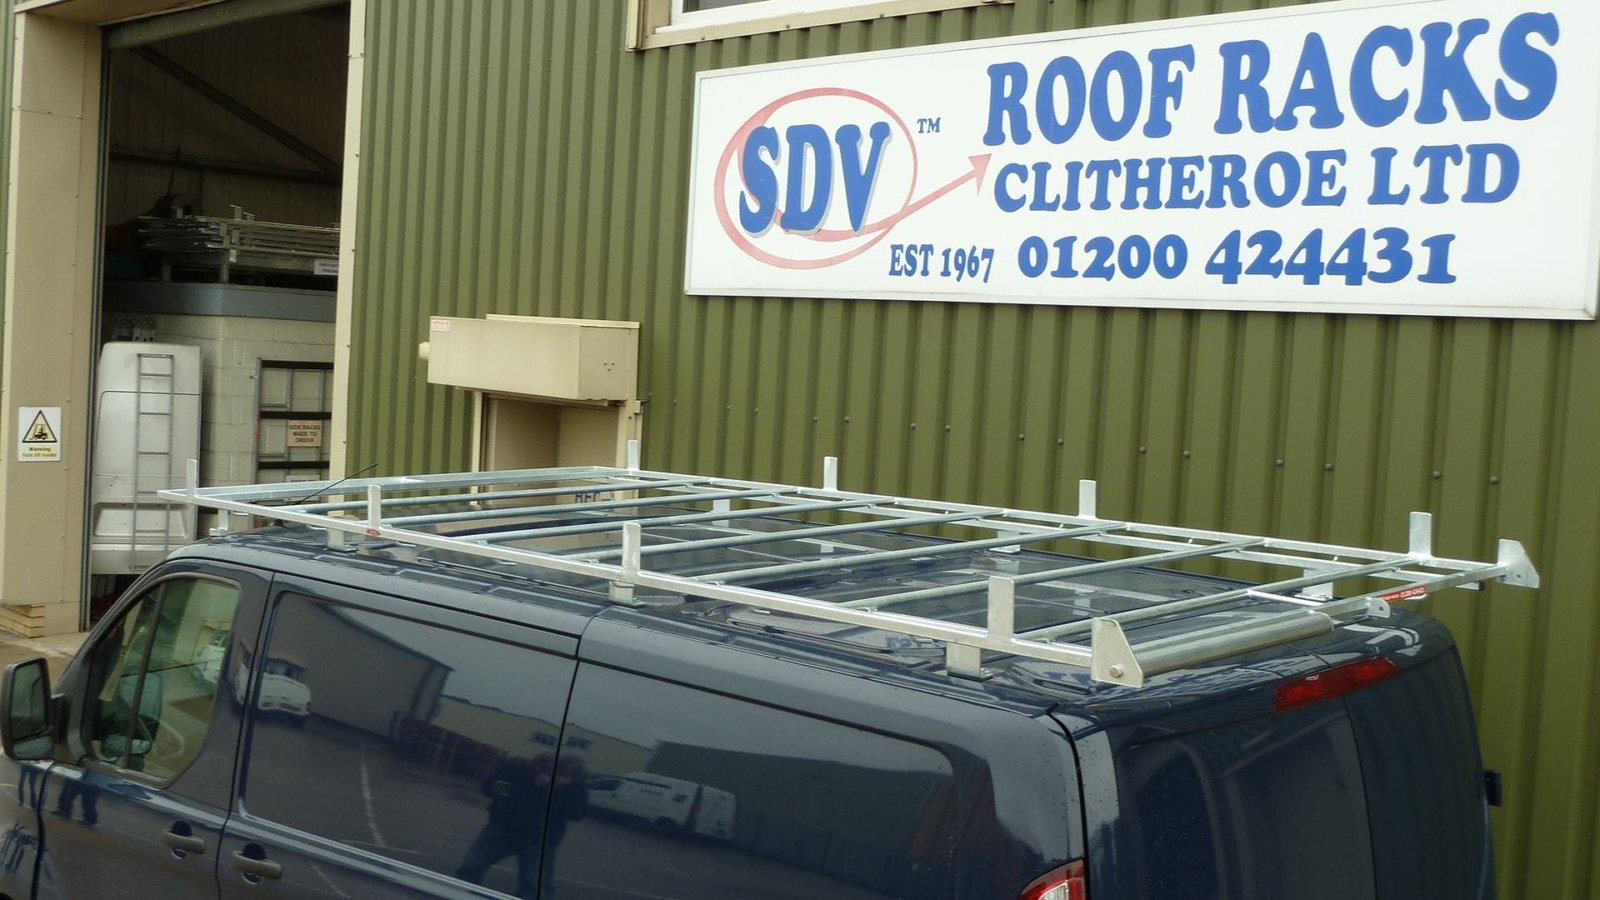 Sdv Roof Racks Gallery Of Our Fitted Roof Racks And